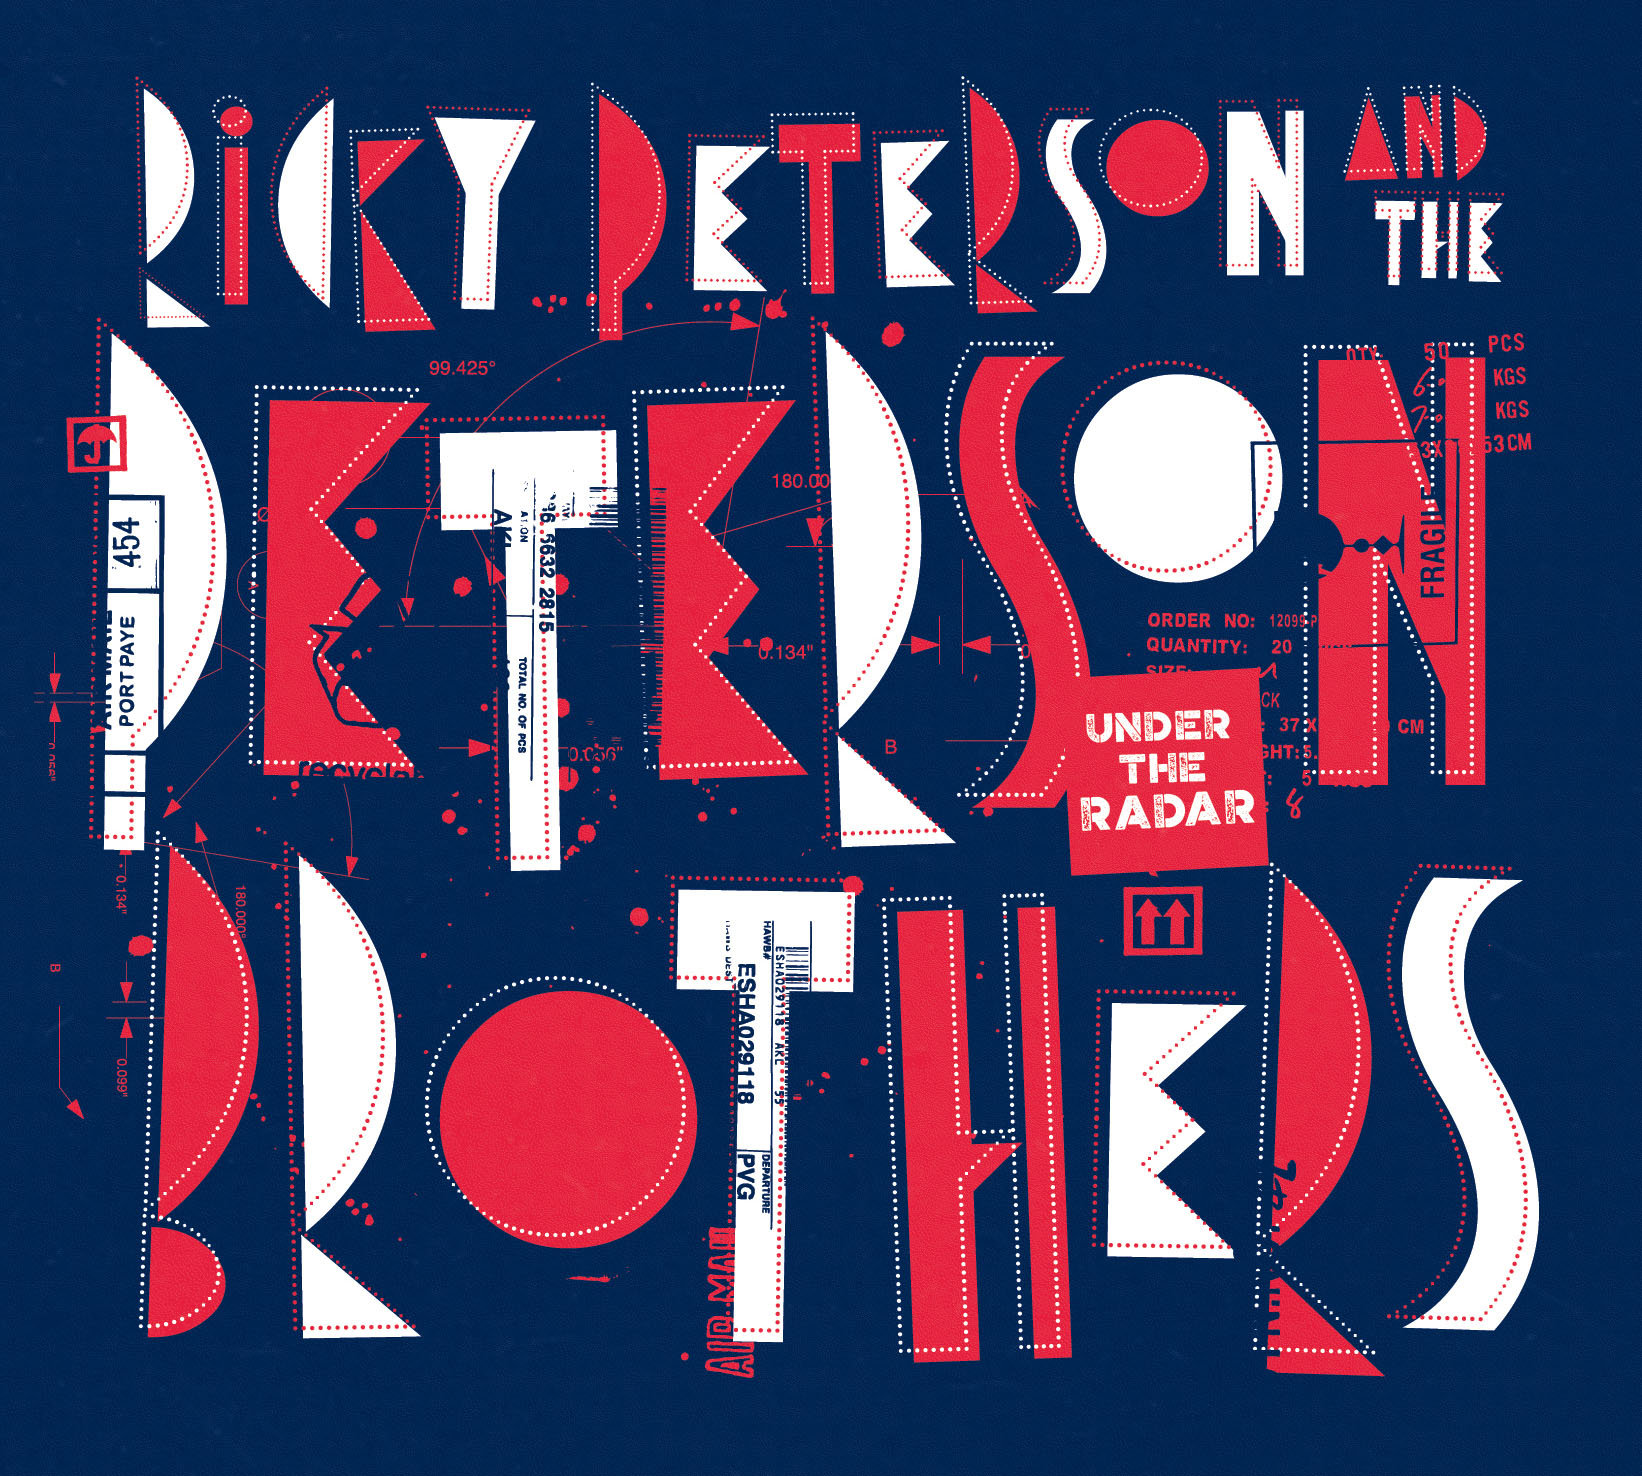 D77079 PETERSON BROS cover